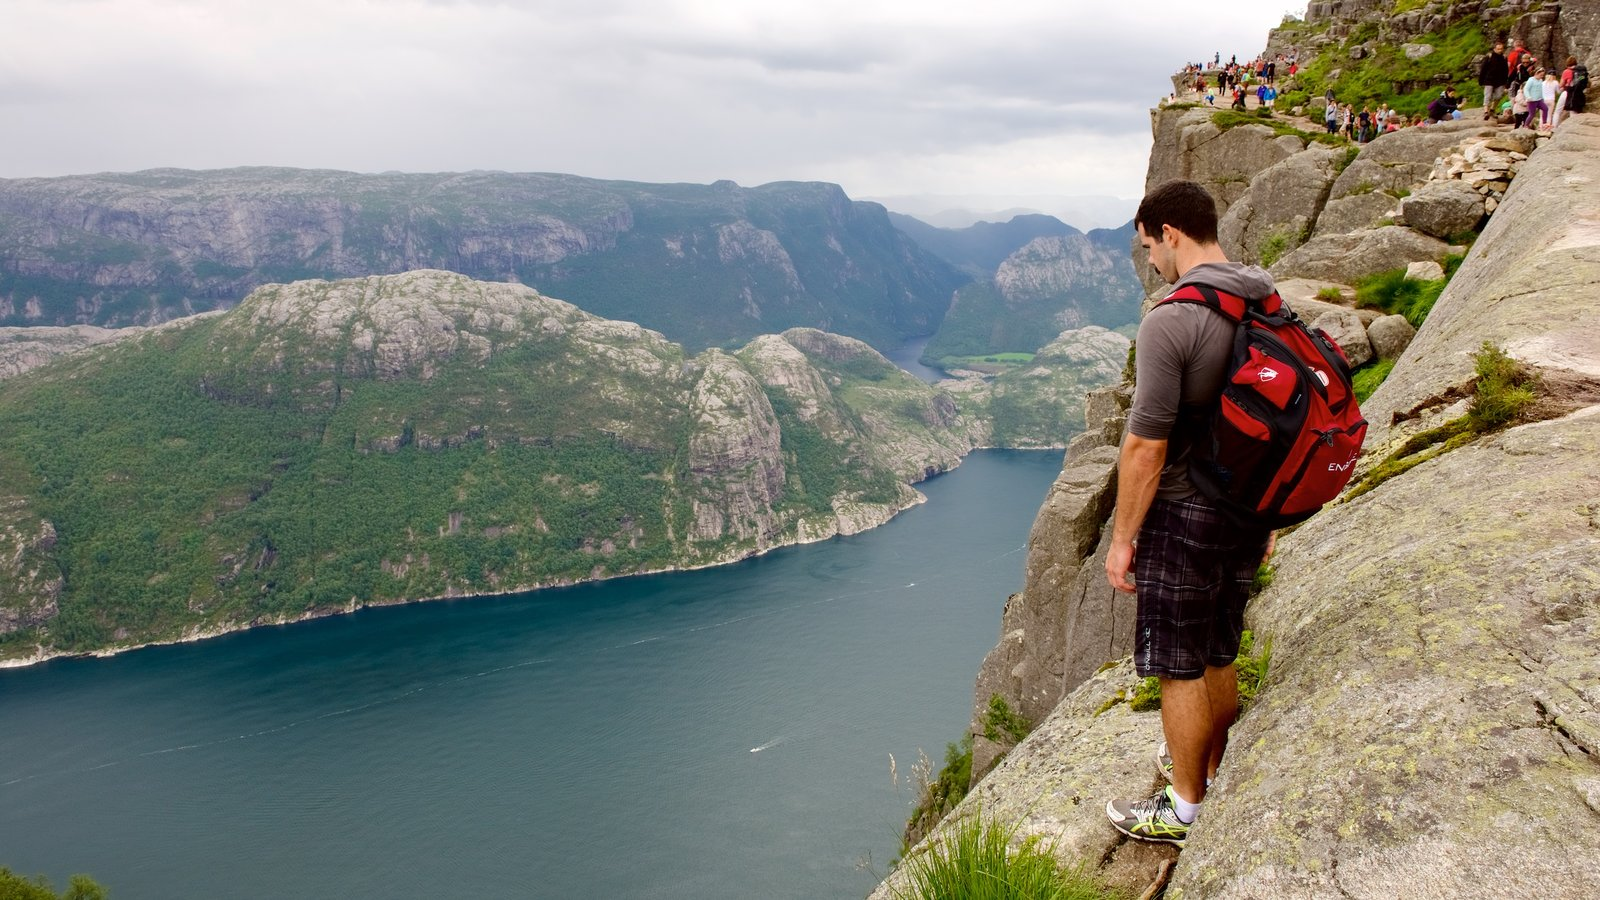 Preikestolen featuring mountains and a lake or waterhole as well as an individual male